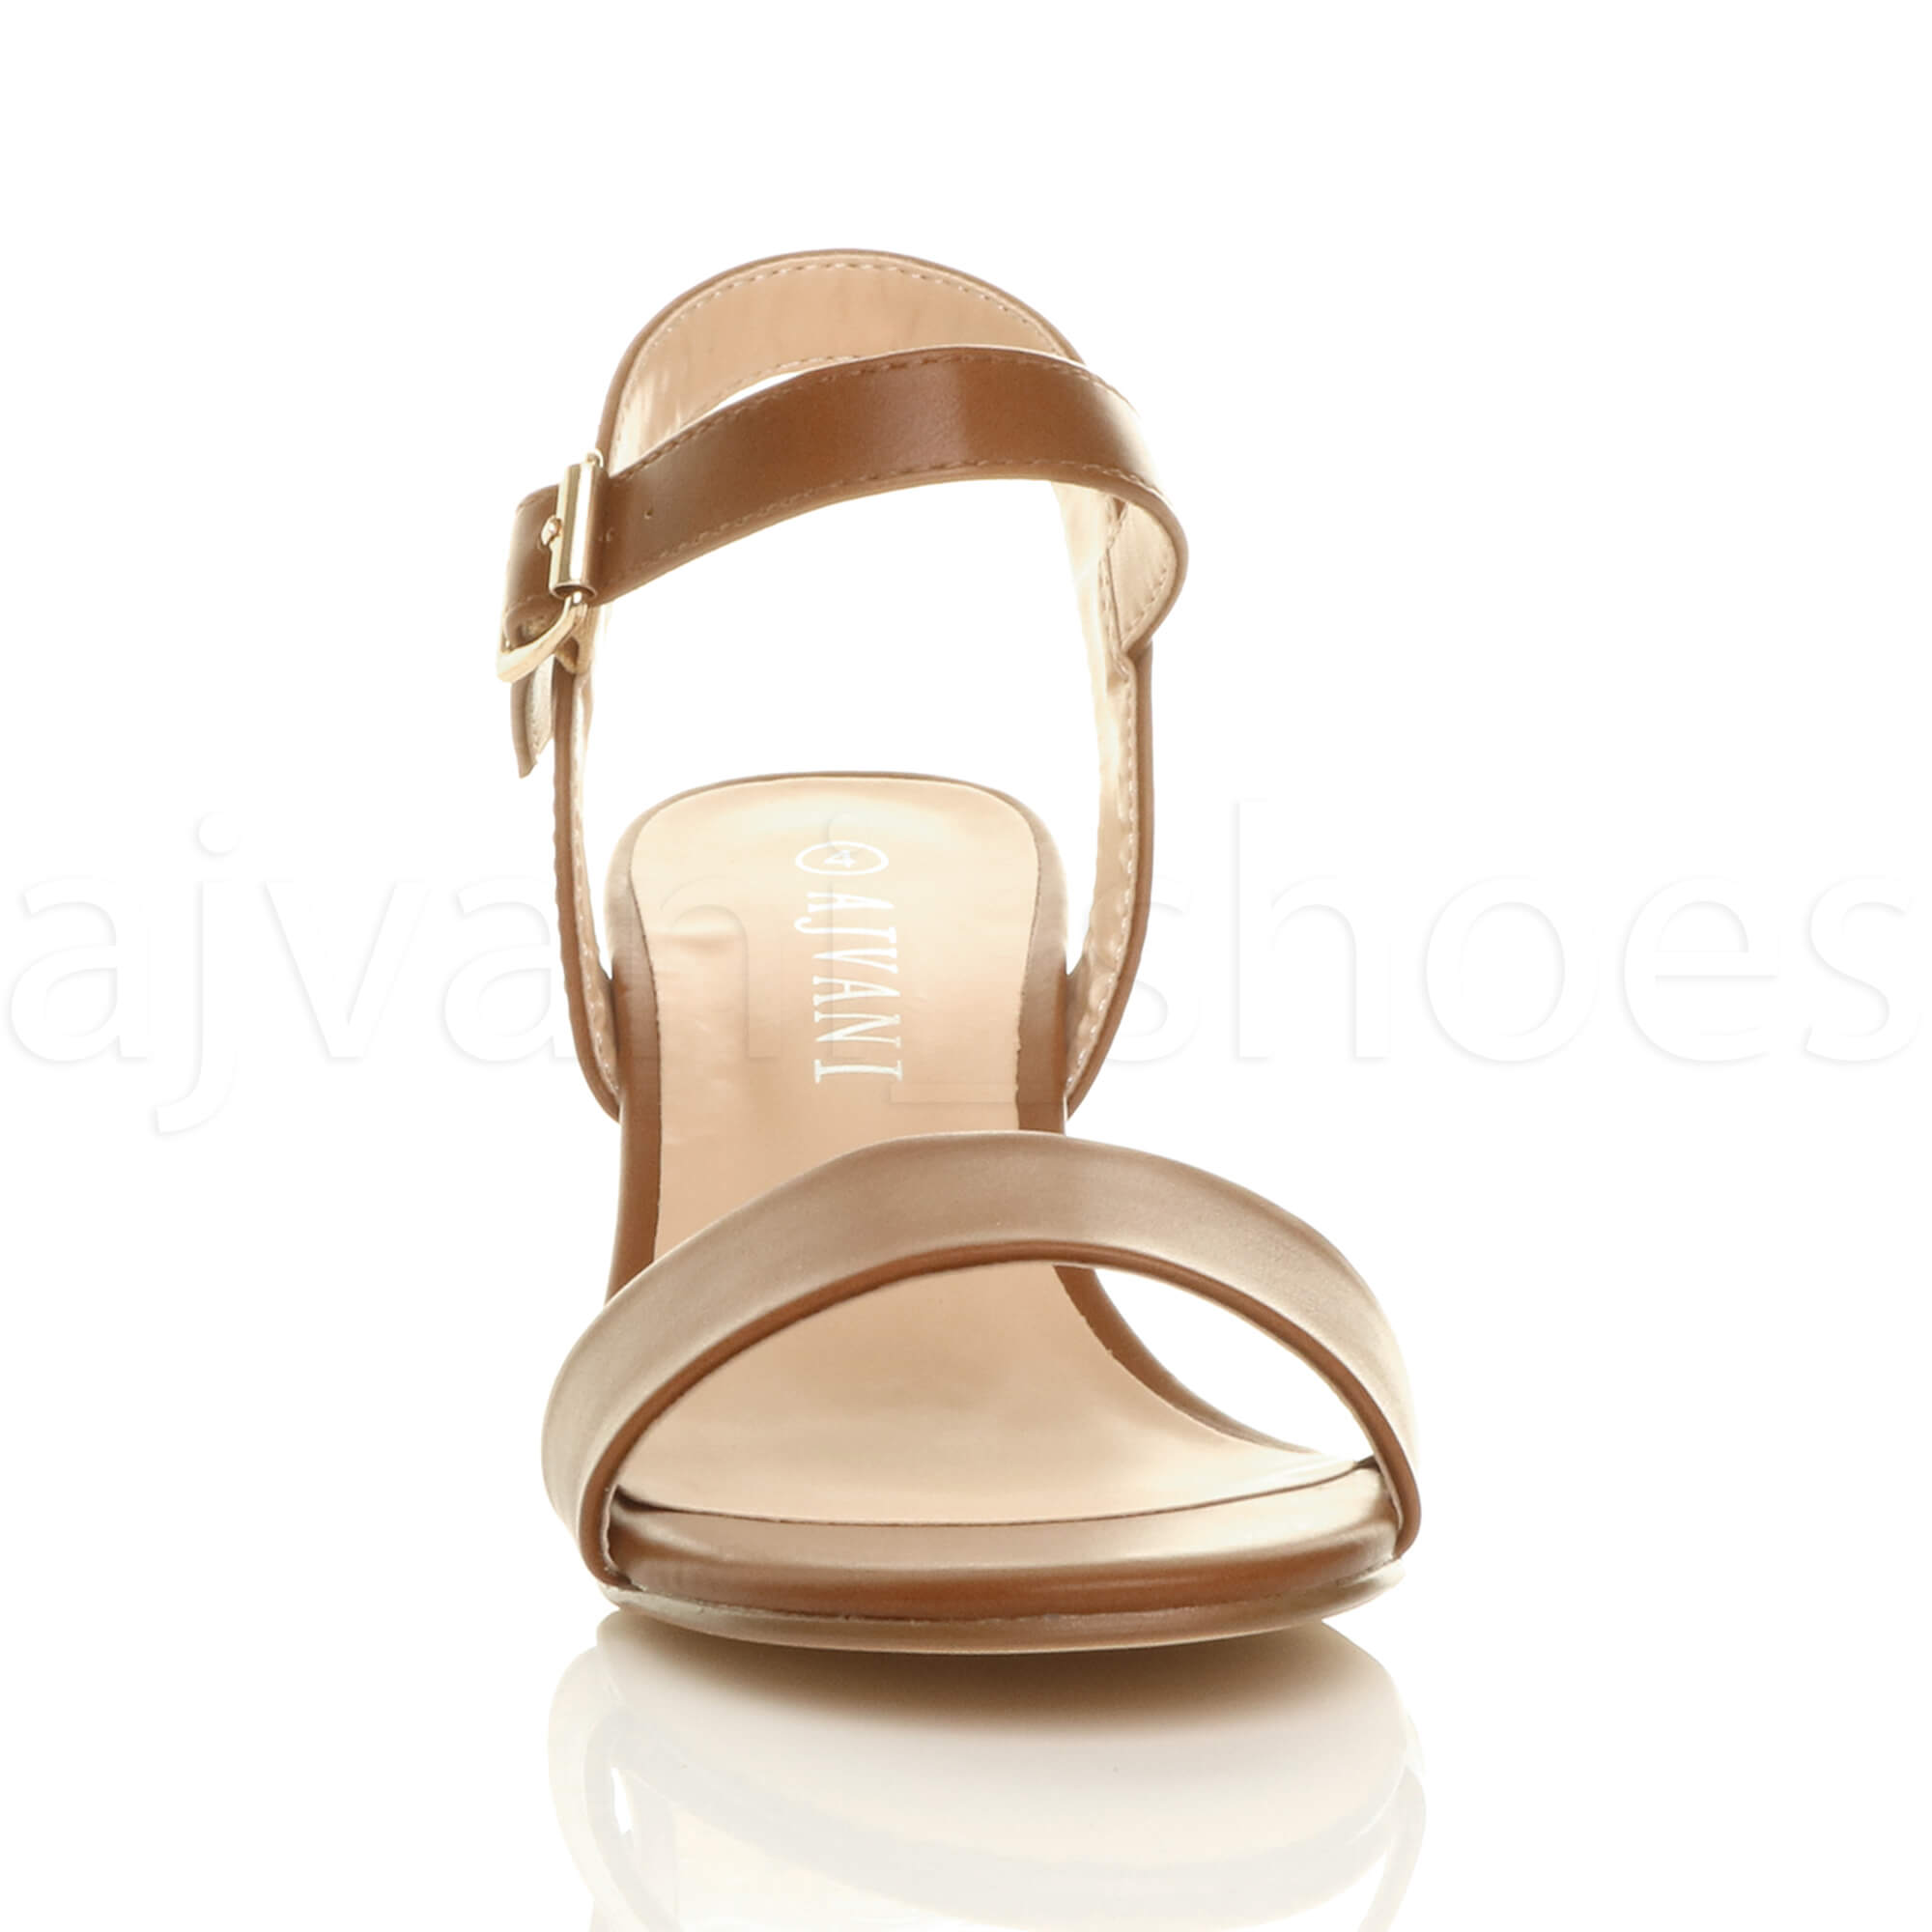 WOMENS-LADIES-MID-LOW-BLOCK-HEEL-PEEP-TOE-ANKLE-STRAP-STRAPPY-PARTY-SANDALS-SIZE thumbnail 143